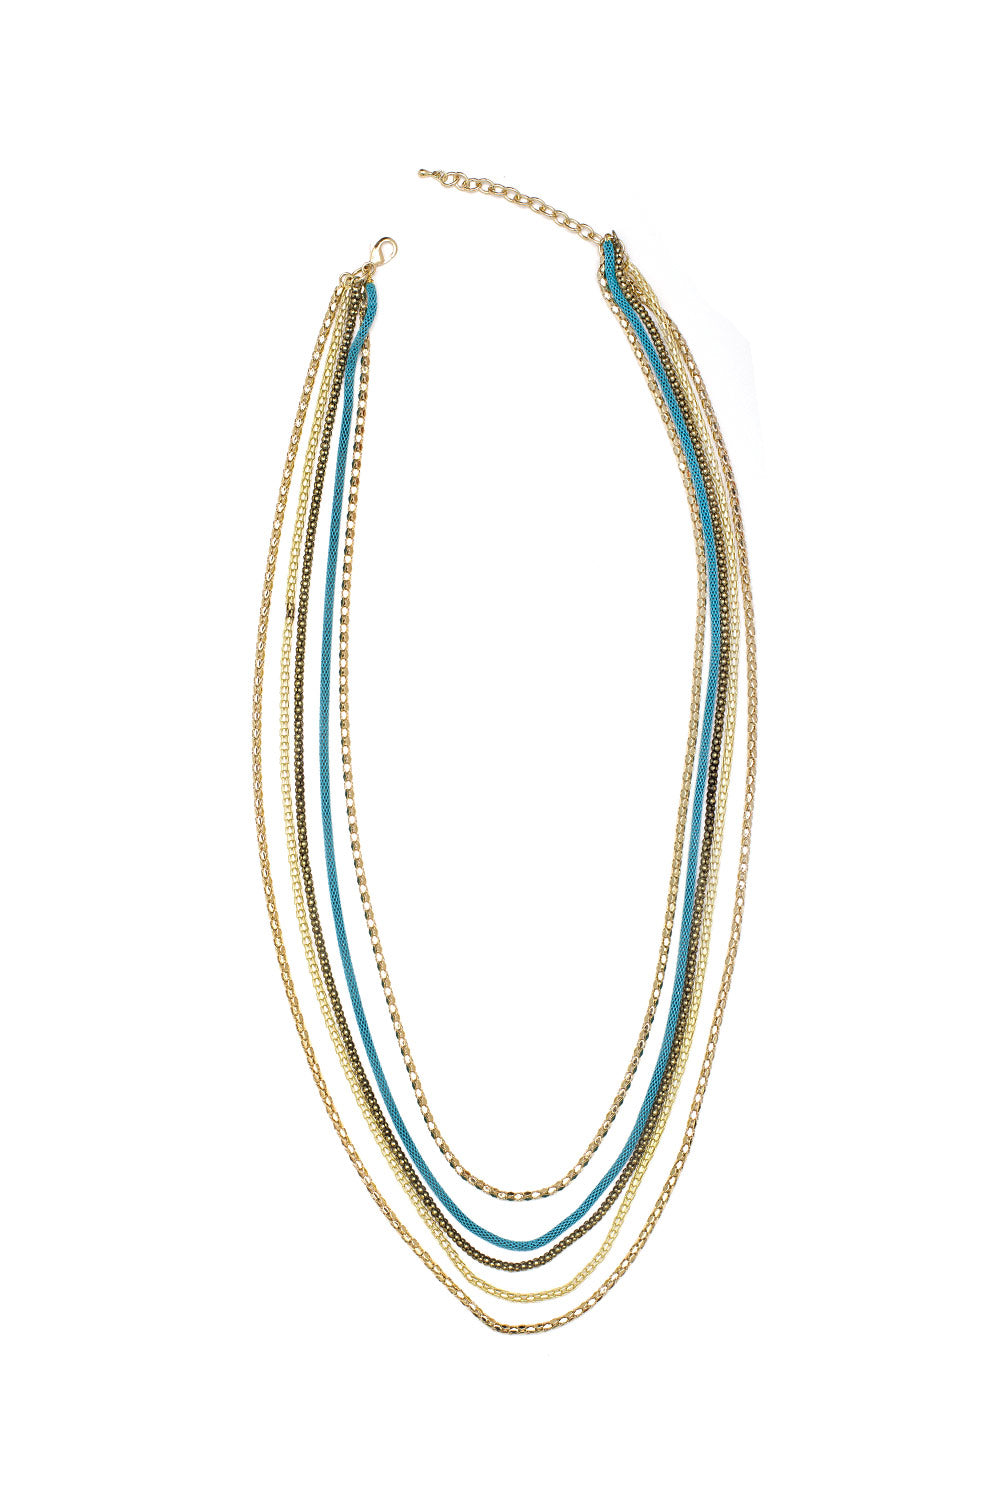 Type 3 Serpentine Style Necklace